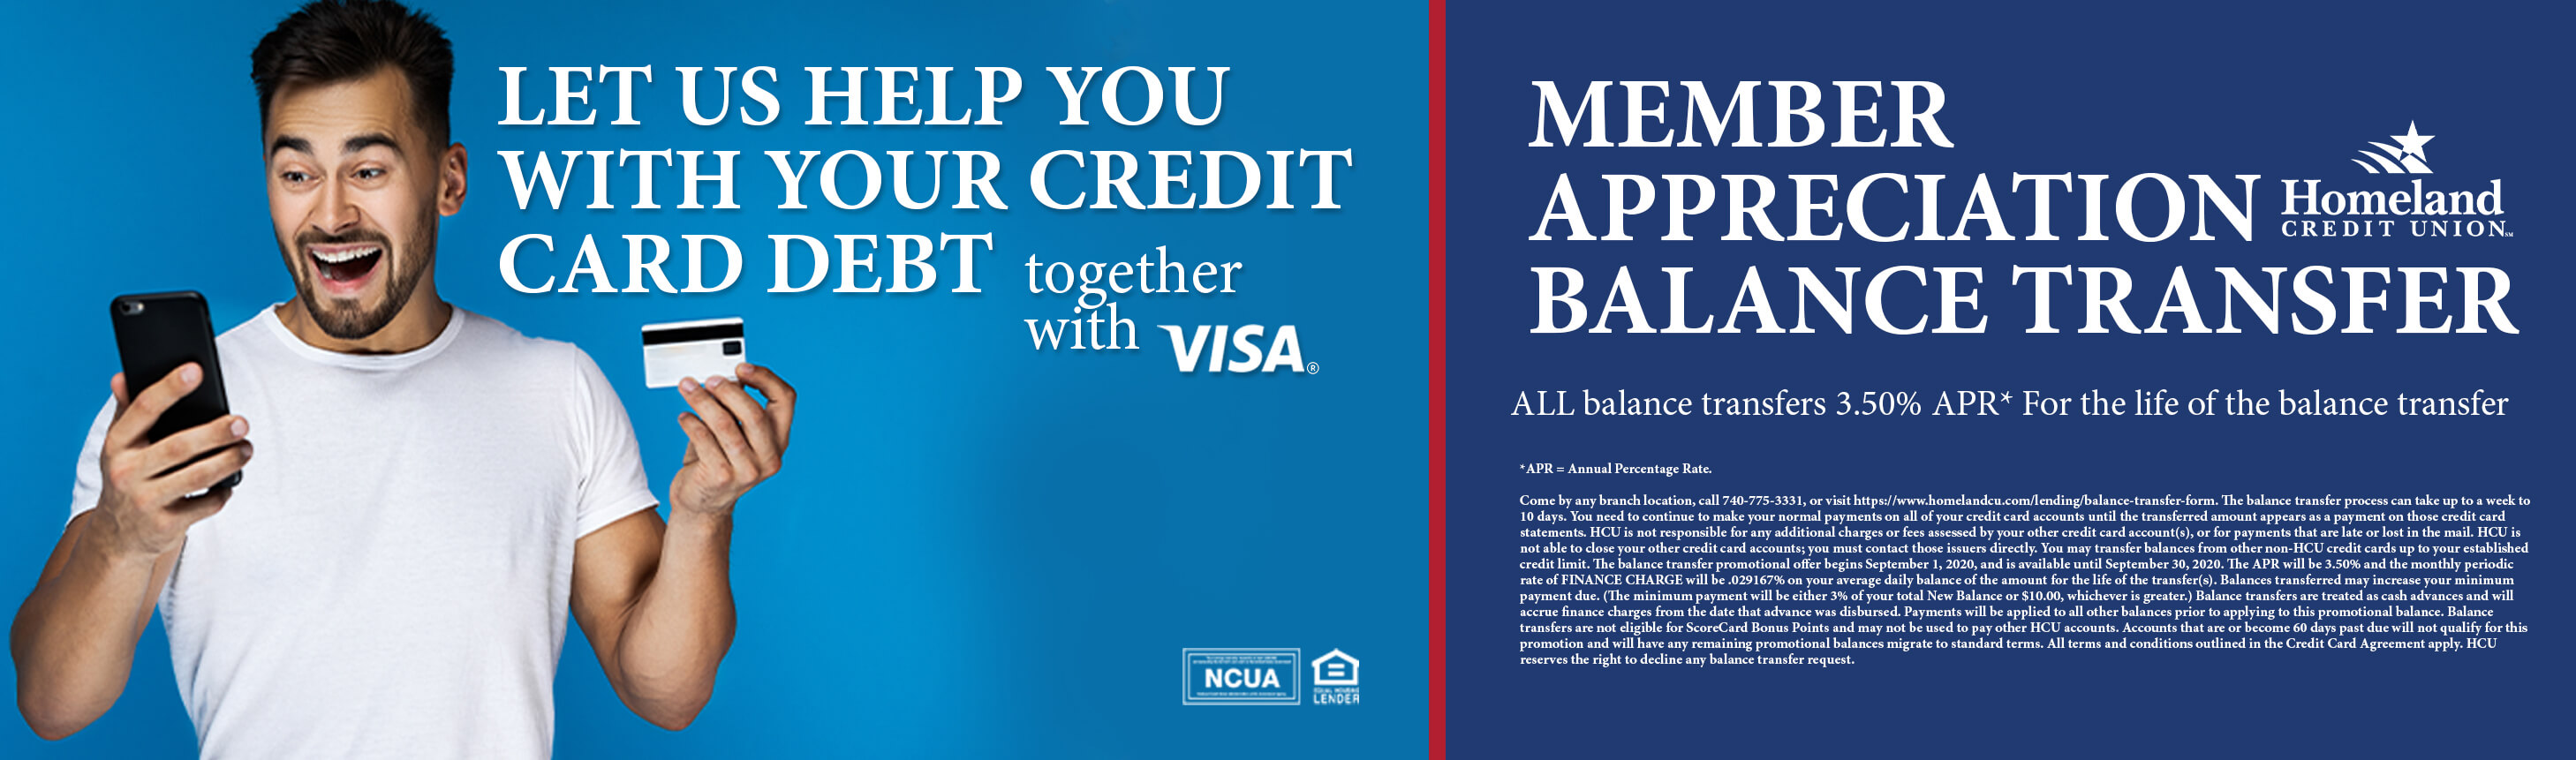 Let us help you with your credit card debt together with Visa® Member Appreciation Balance Transfer Come by any branch location, call 740-775-3331, or visit https://www.homelandcu.com/lending/balance-transfer-form.. The balance transfer process can take up to a week to 10 days. You need to continue to make your normal payments on all of your credit card accounts until the transferred amount appears as a payment on those credit card statements. HCU is not responsible for any additional charges or fees assessed by your other credit card account(s), or for payments that are late or lost in the mail. HCU is not able to close your other credit card accounts; you must contact those issuers directly. You may transfer balances from other non-HCU credit cards up to your established credit limit. The balance transfer promotional offer begins September 1, 2020, and is available until September 30, 2020. The APR will be 3.50% and the monthly periodic rate of FINANCE CHARGE will be .029167% on your average daily balance of the amount for the life of the transfer(s). Balances transferred may increase your minimum payment due. (The minimum payment will be either 3% of your total New Balance or $10.00, whichever is greater.) Balance transfers are treated as cash advances and will accrue finance charges from the date that advance was disbursed. Payments will be applied to all other balances prior to applying to this promotional balance. Balance transfers are not eligible for ScoreCard Bonus Points and may not be used to pay other HCU accounts. Accounts that are or become 60 days past due will not qualify for this promotion and will have any remaining promotional balances migrate to standard terms. All terms and conditions outlined in the Credit Card Agreement apply. HCU reserves the right to decline any balance transfer request.